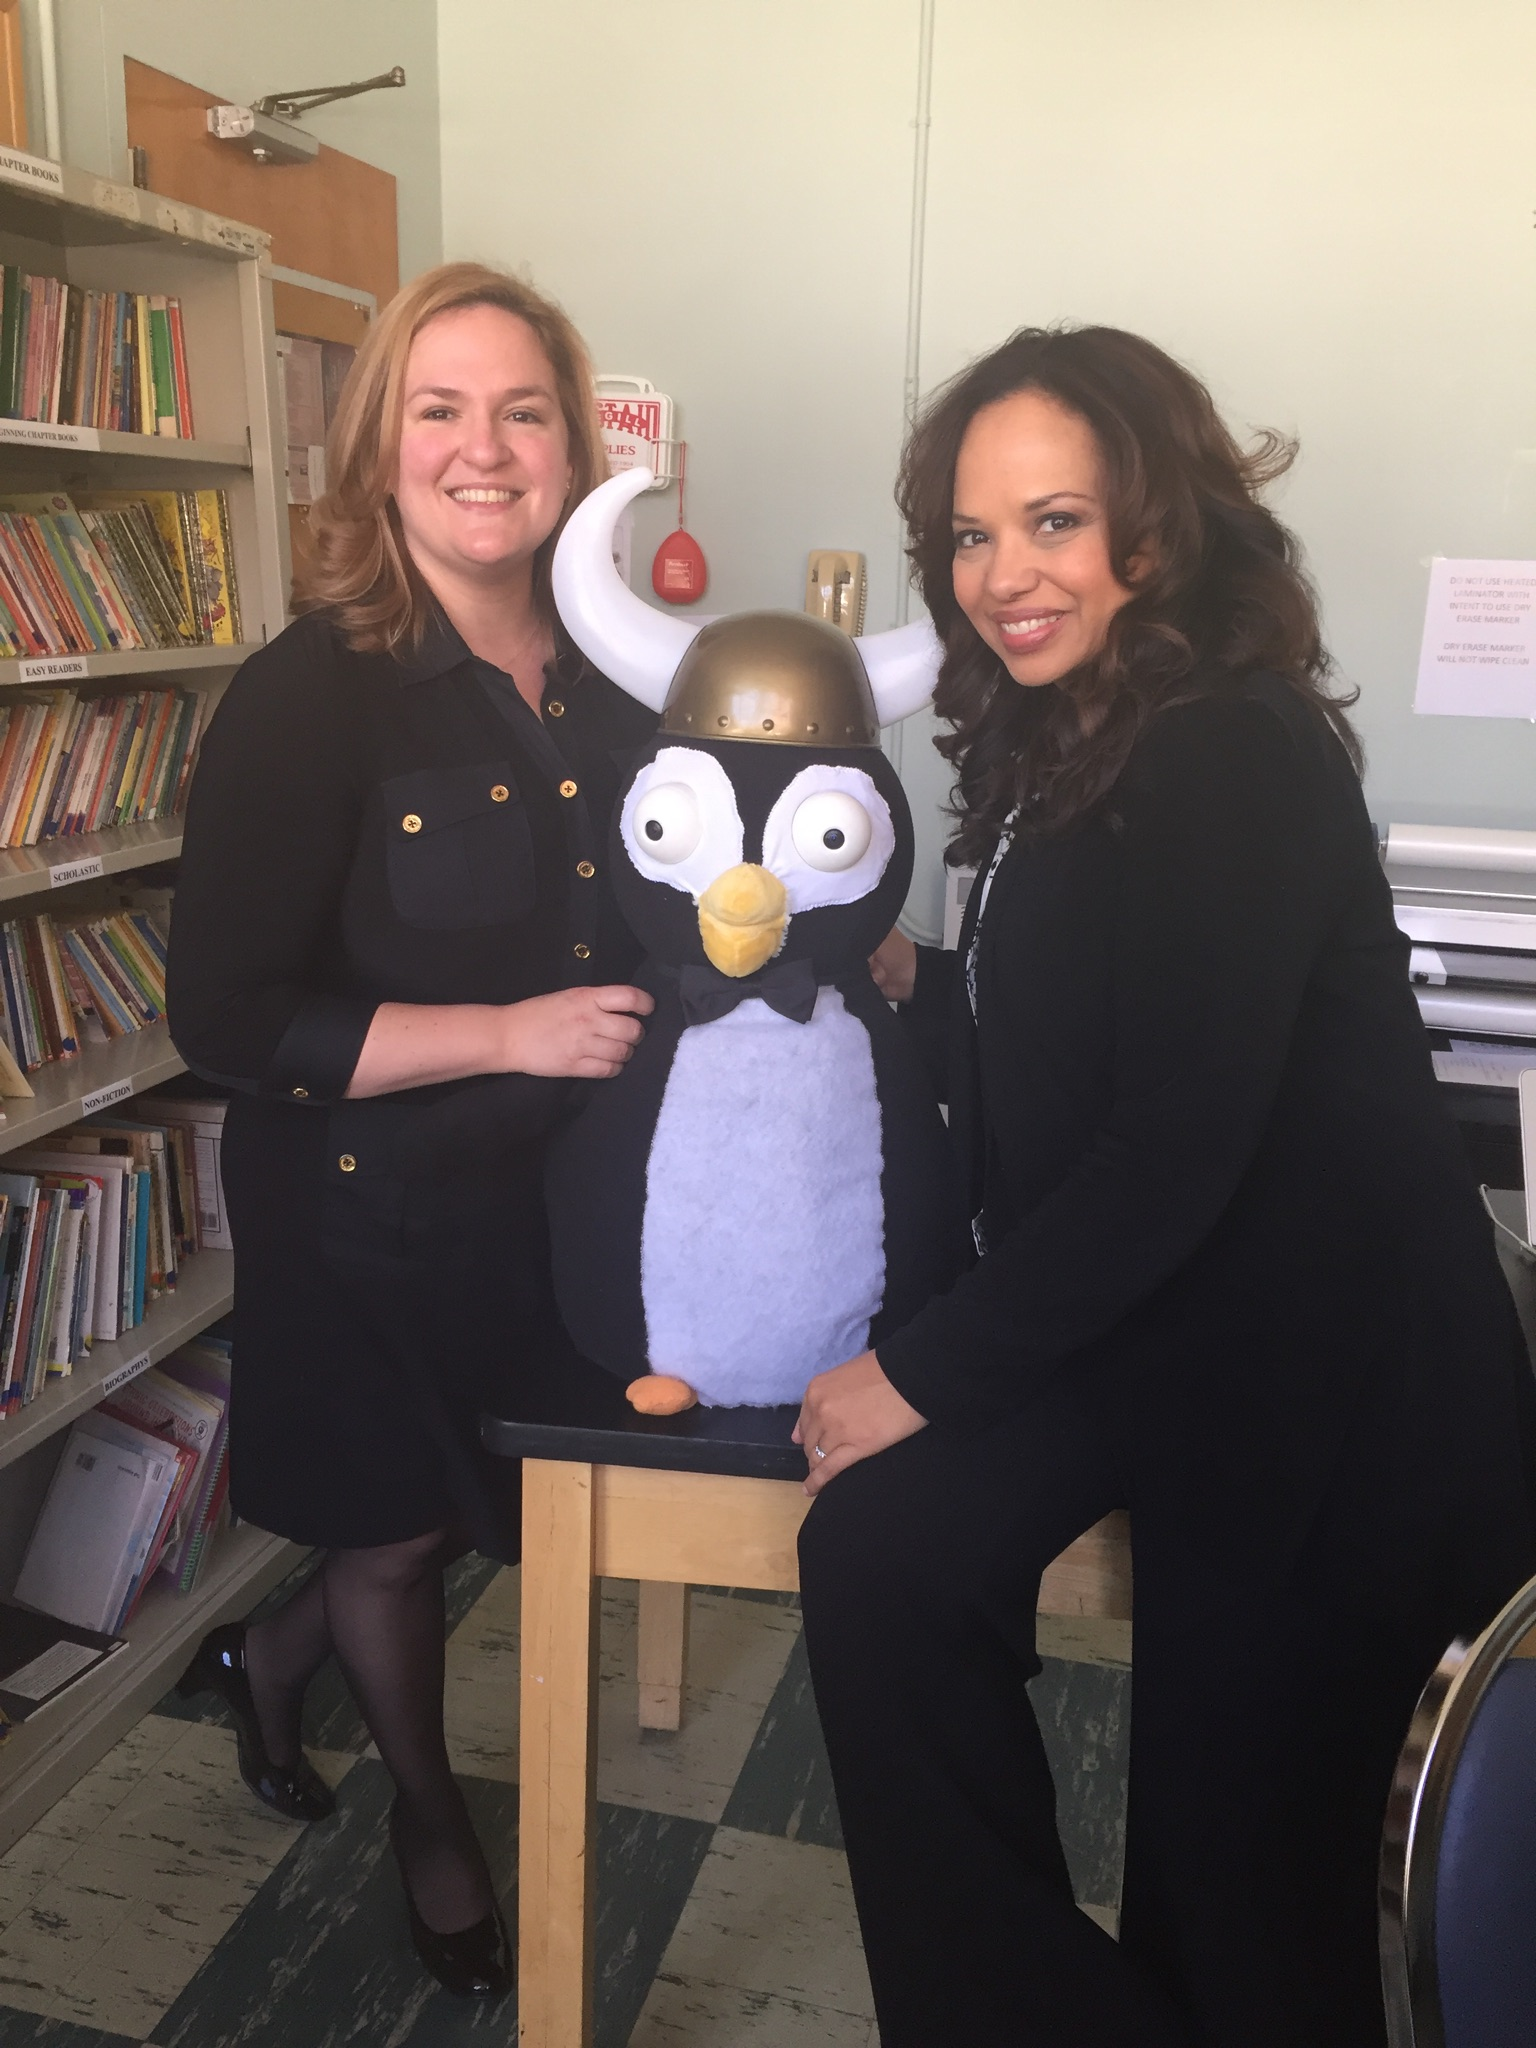 Laurie Dickstein-Fischer with Dr. Mallika Marshall of WBZ-TV.